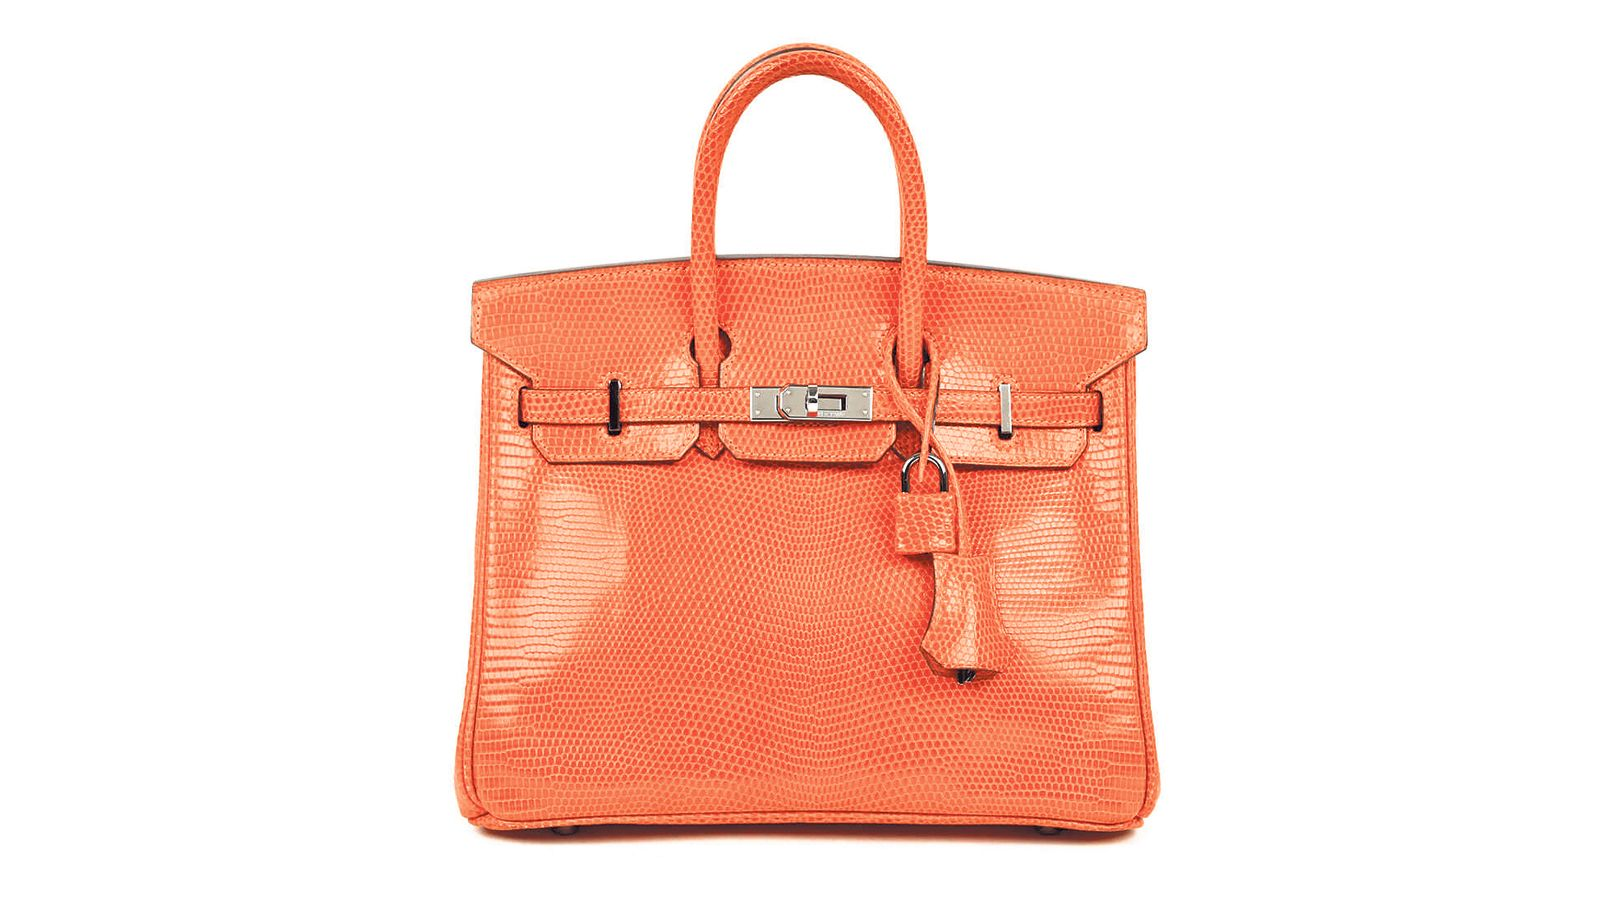 Hermes Birkin 25 in lizard skin, S 38,000, from The Fifth Collection. 1099dad0ab